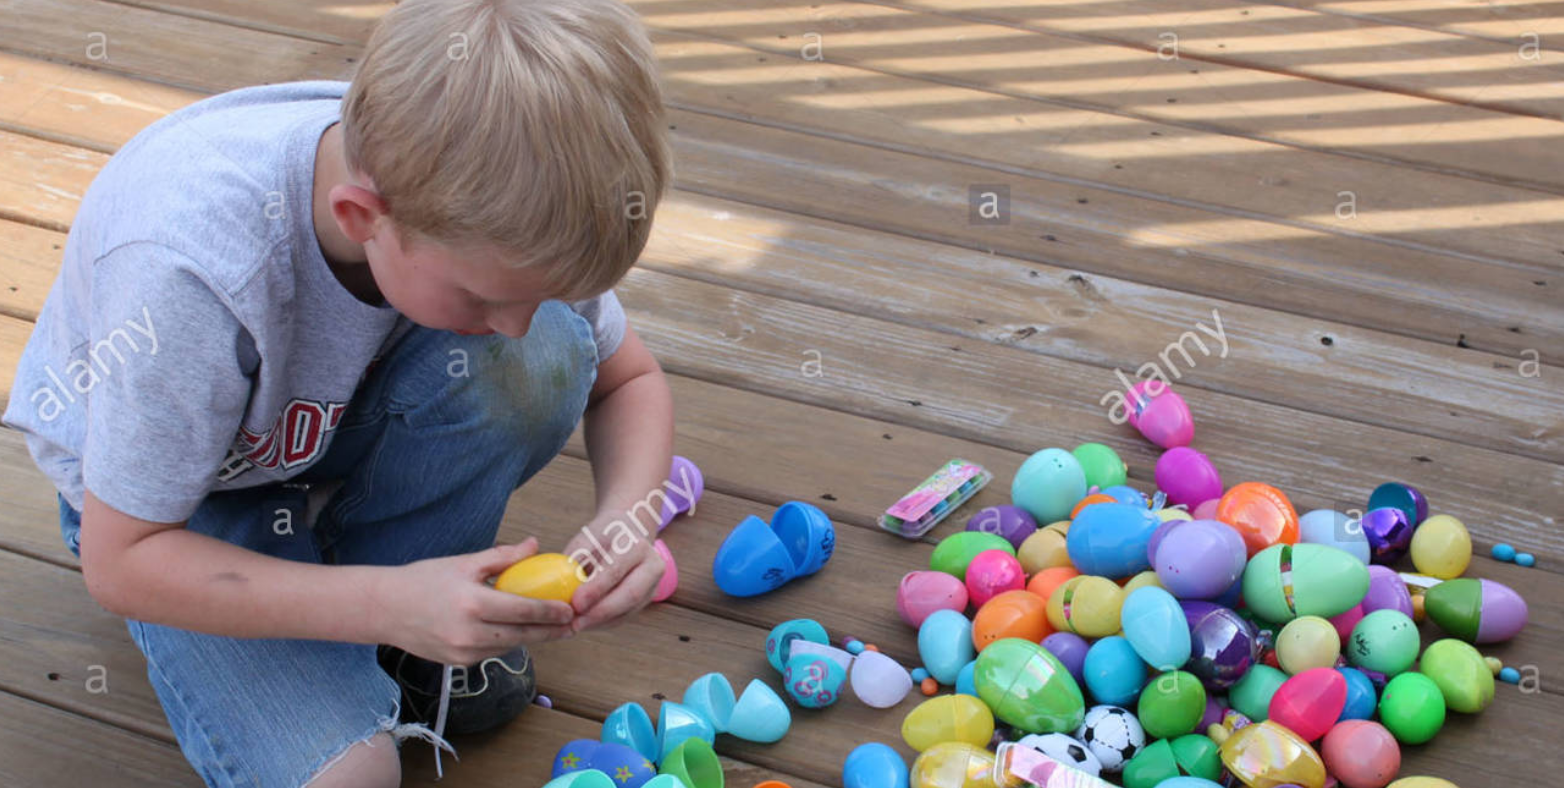 A child opens a plastic easter egg, with numerous plastic eggs strewn around beside him.